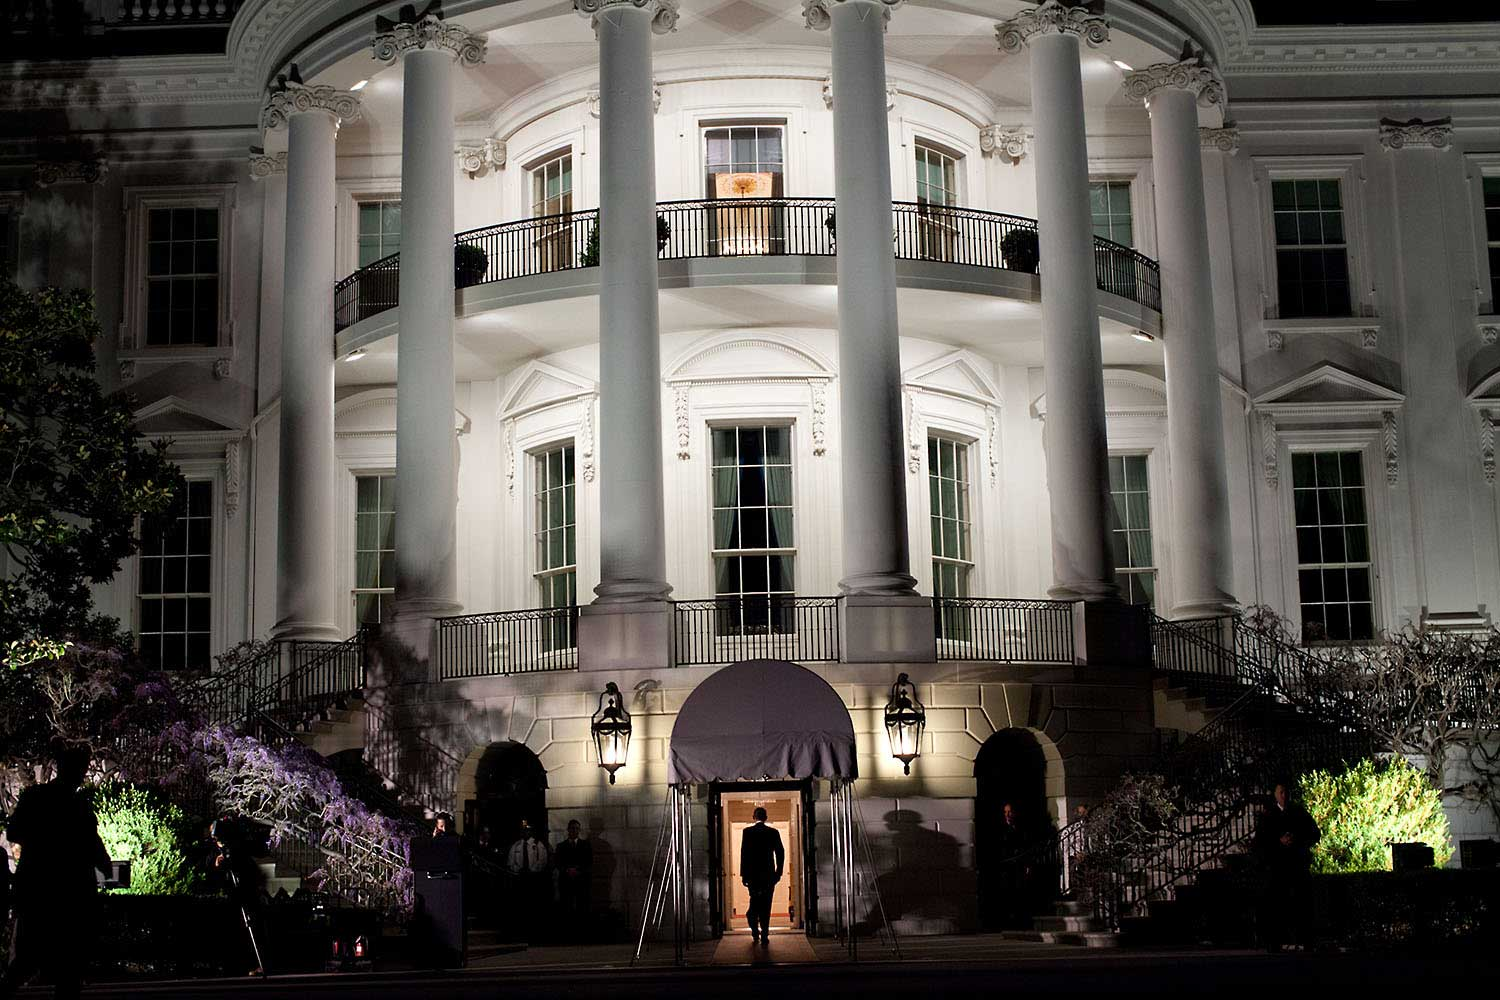 President Obama enters the White House at the South Portico following his arrival aboard Marine One on the South Lawn, March 30, 2012. The President returned from a trip to Vermont and Maine.